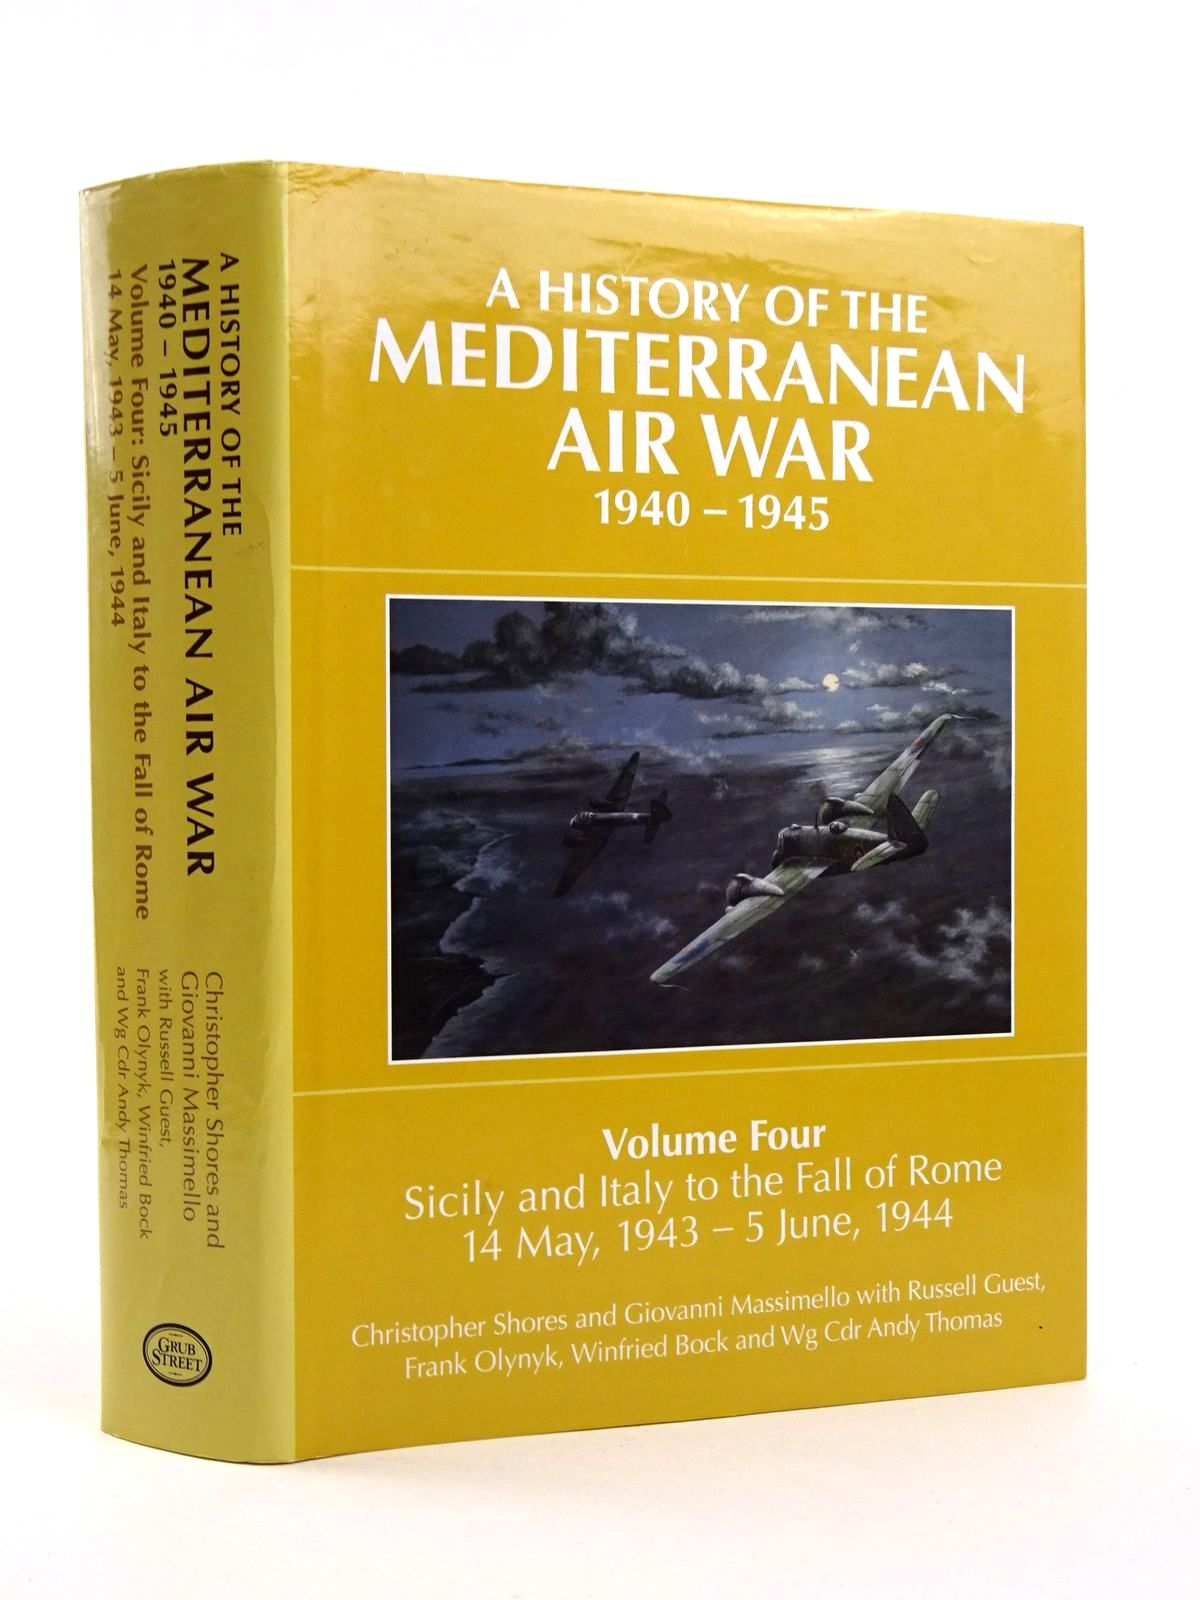 Photo of A HISTORY OF THE MEDITERRANEAN AIR WAR 1940-1945 VOLUME FOUR: SICILY AND ITALY TO THE FALL OF ROME written by Shores, Christopher<br />Massimello, Giovani<br />Guest, Russell<br />Olynyk, Frank<br />Bock, Winfried published by Grub Street (STOCK CODE: 1818176)  for sale by Stella & Rose's Books